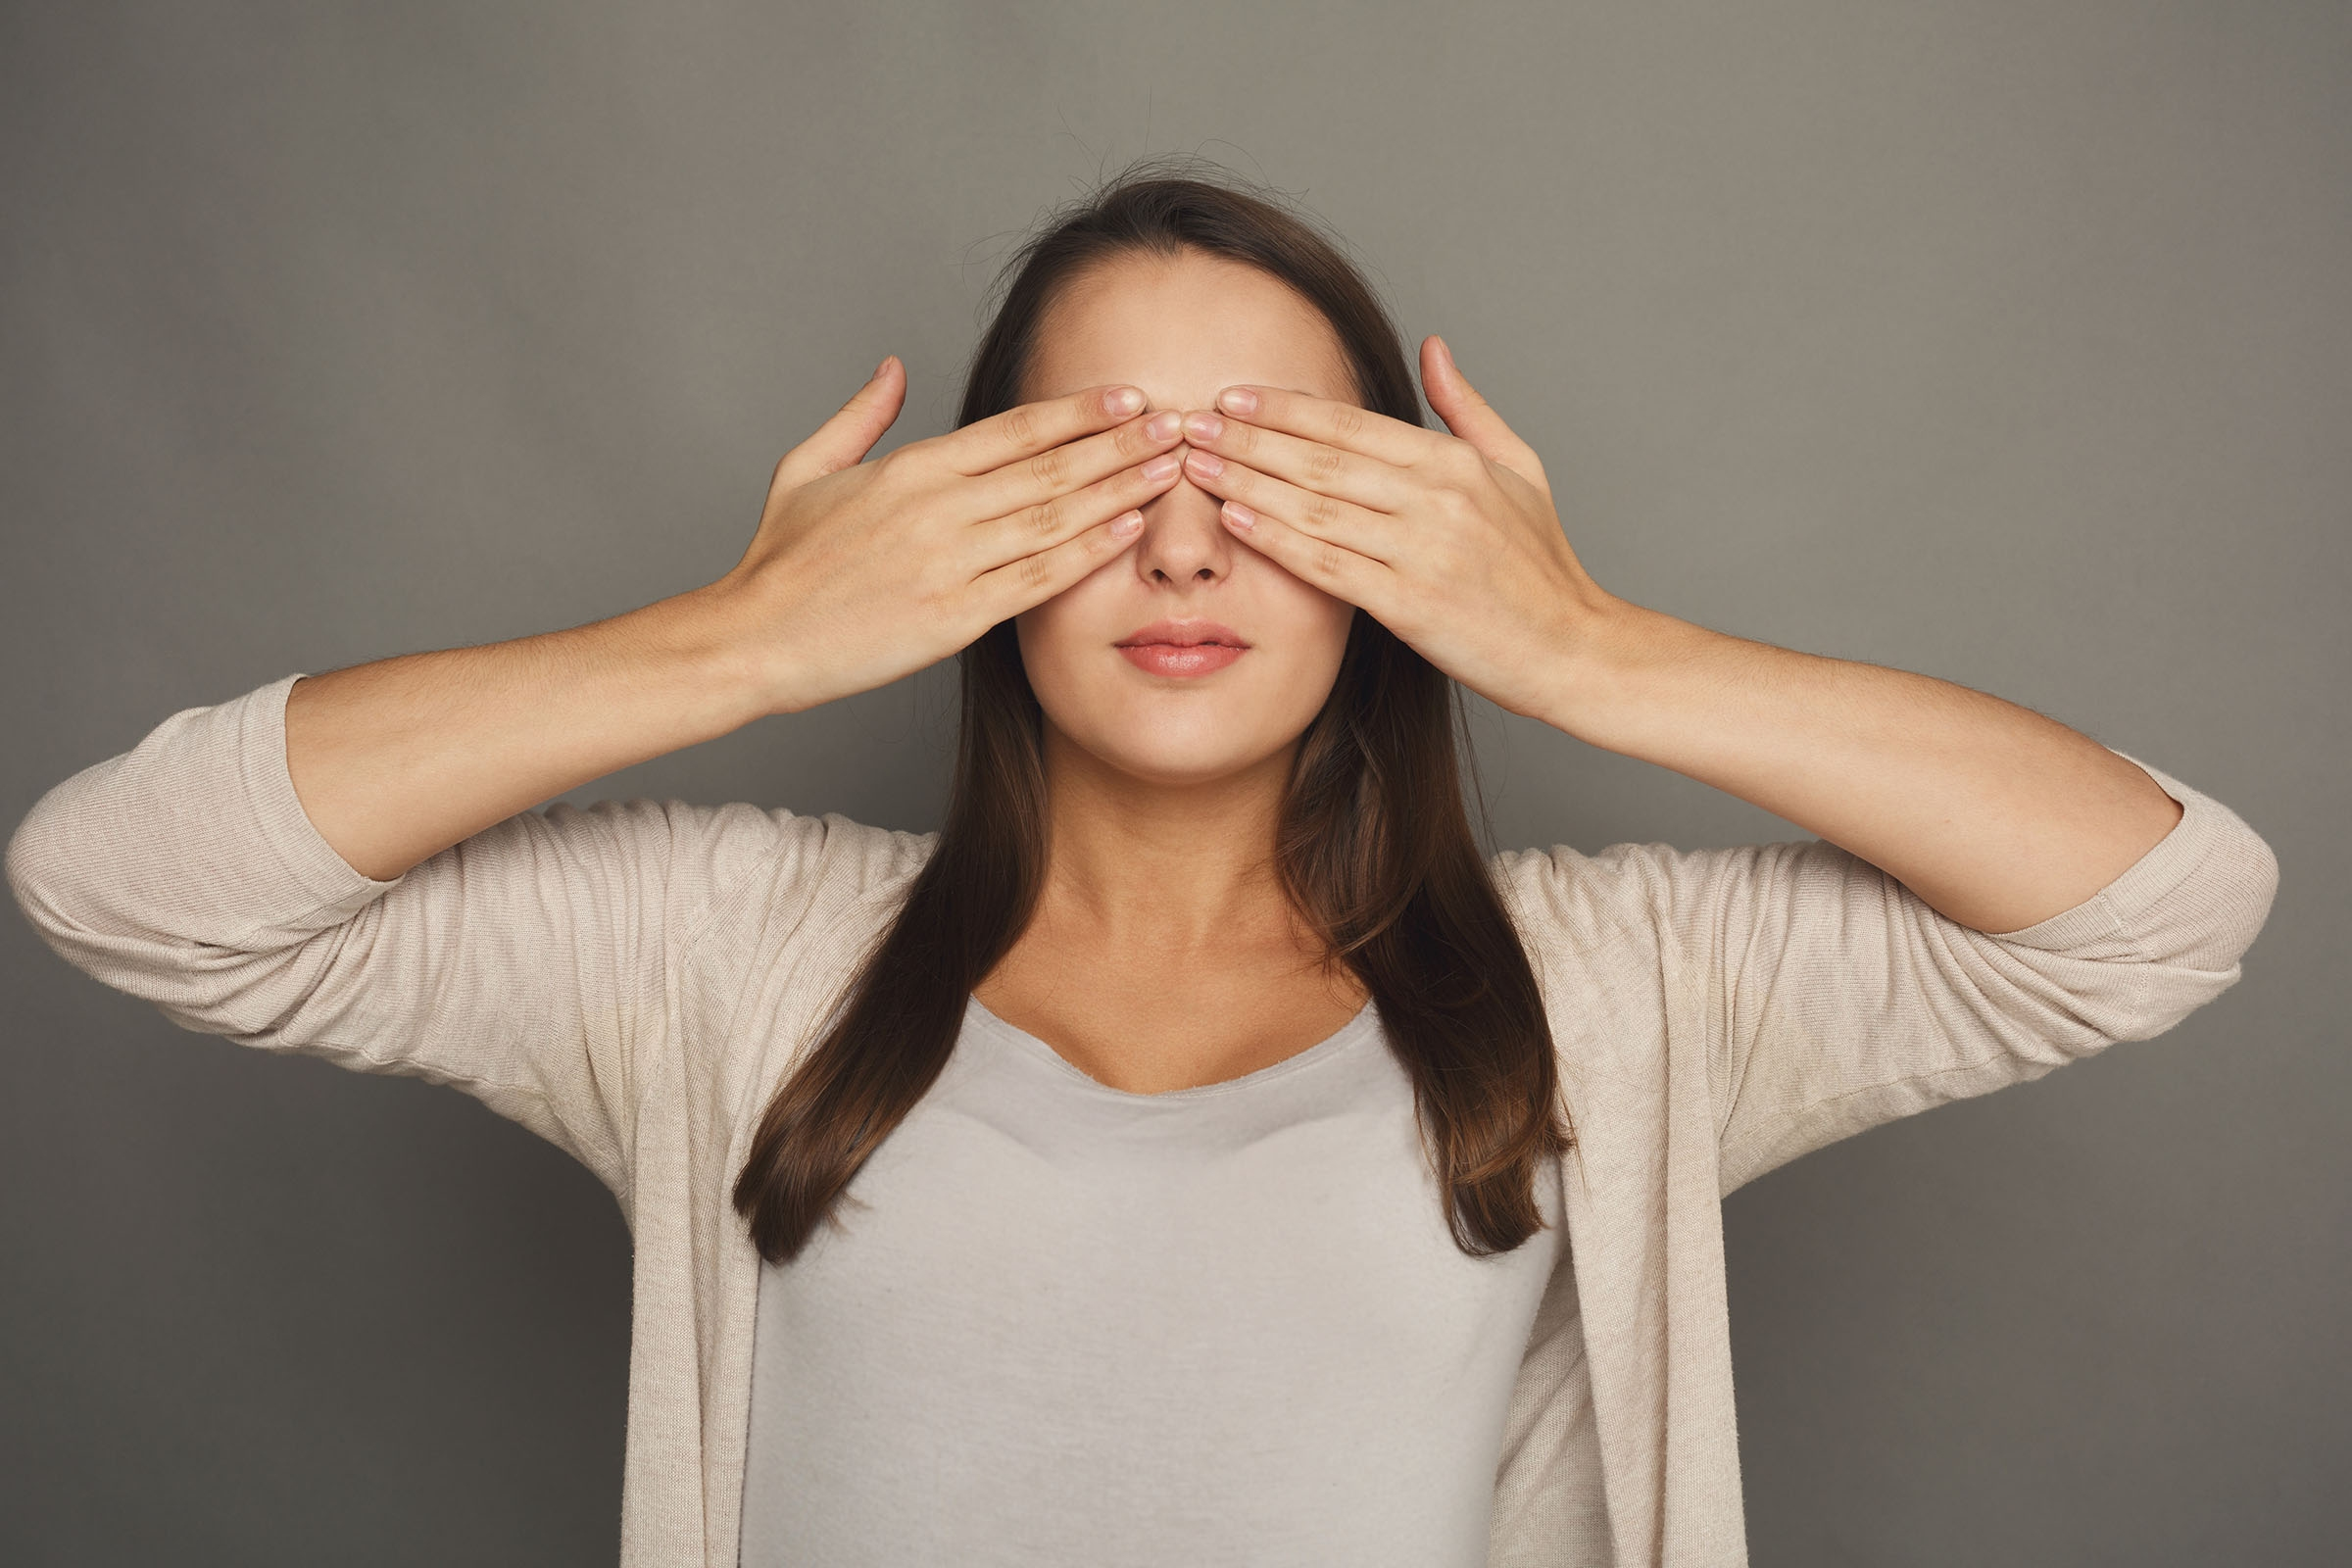 See no evil concept. Portrait of young scared woman covering eyes with hands, gray studio background.